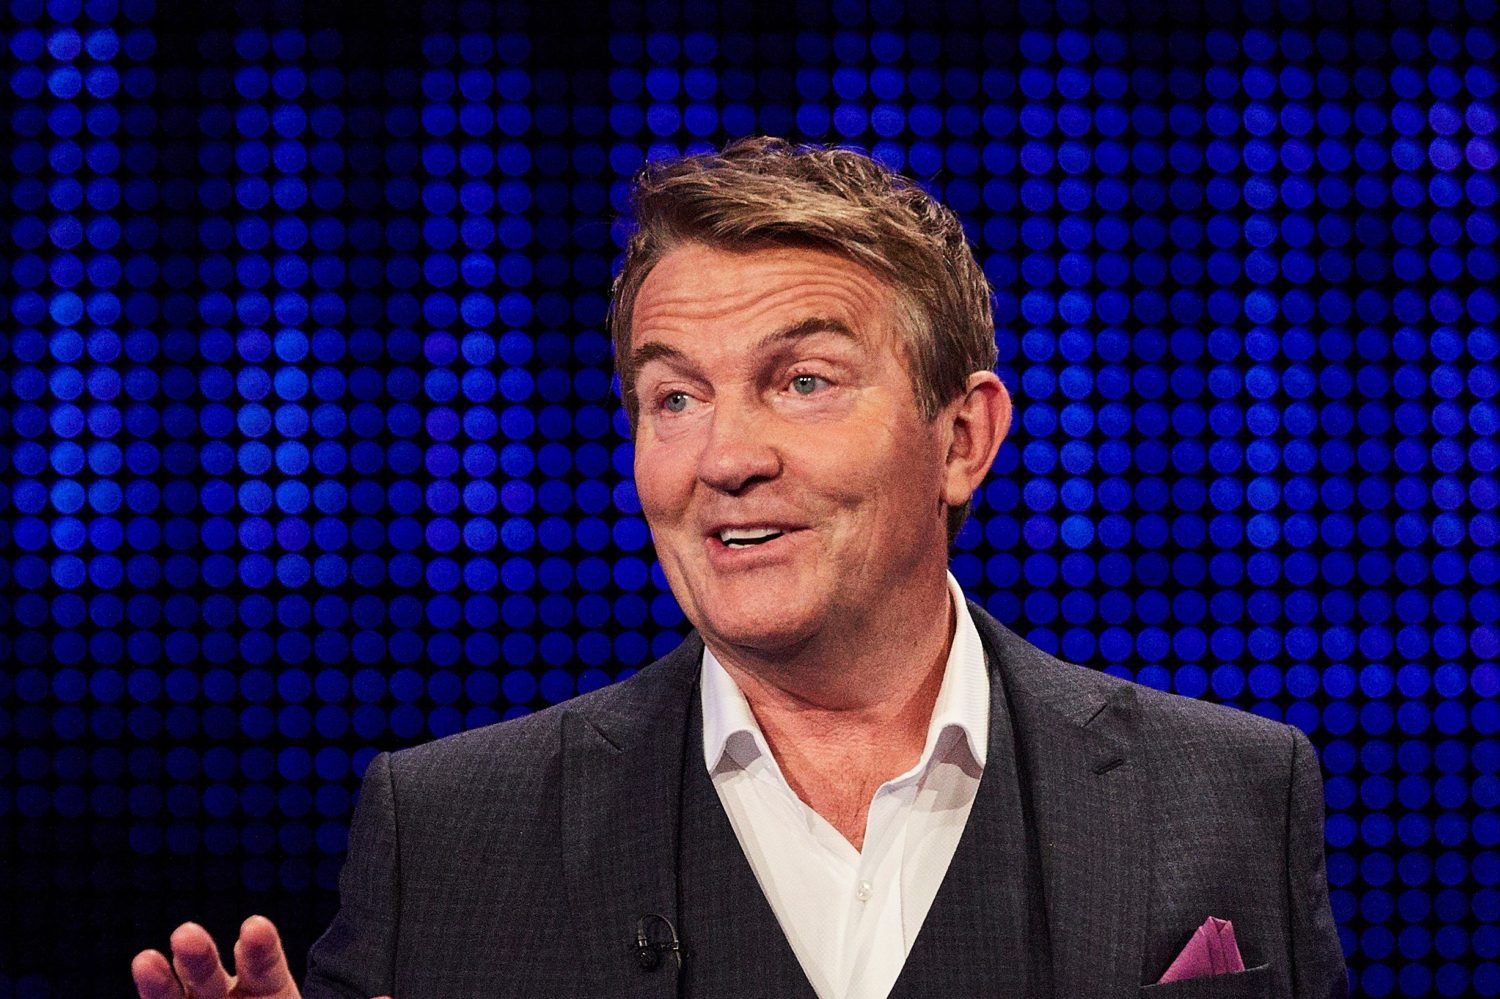 Bradley Walsh loses it on The Chase over cheeky 'furry clam' question